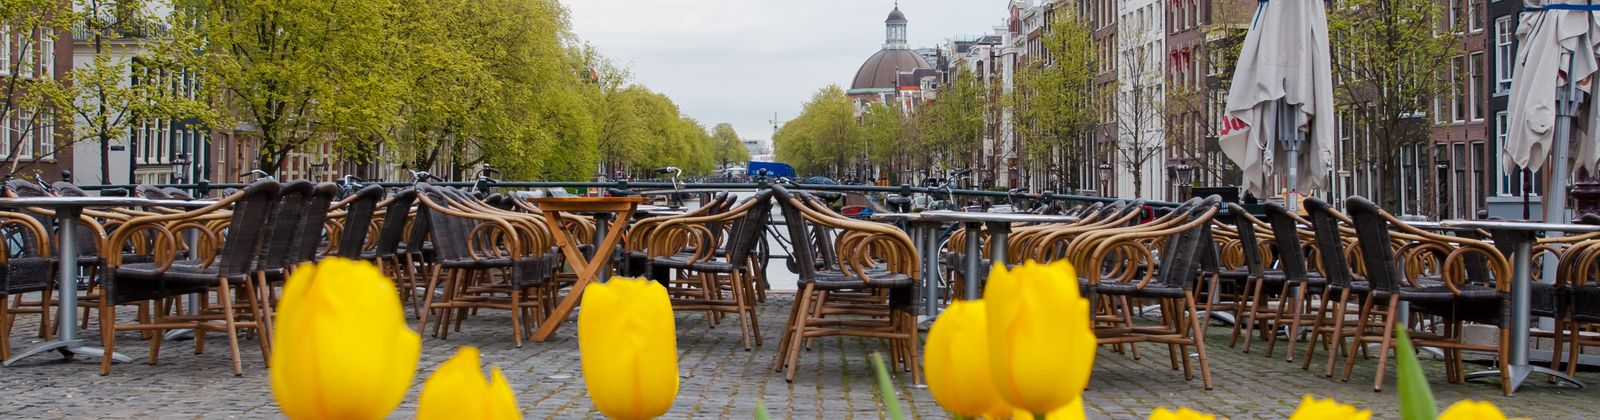 Amsterdam's finest cafes and coffee shops